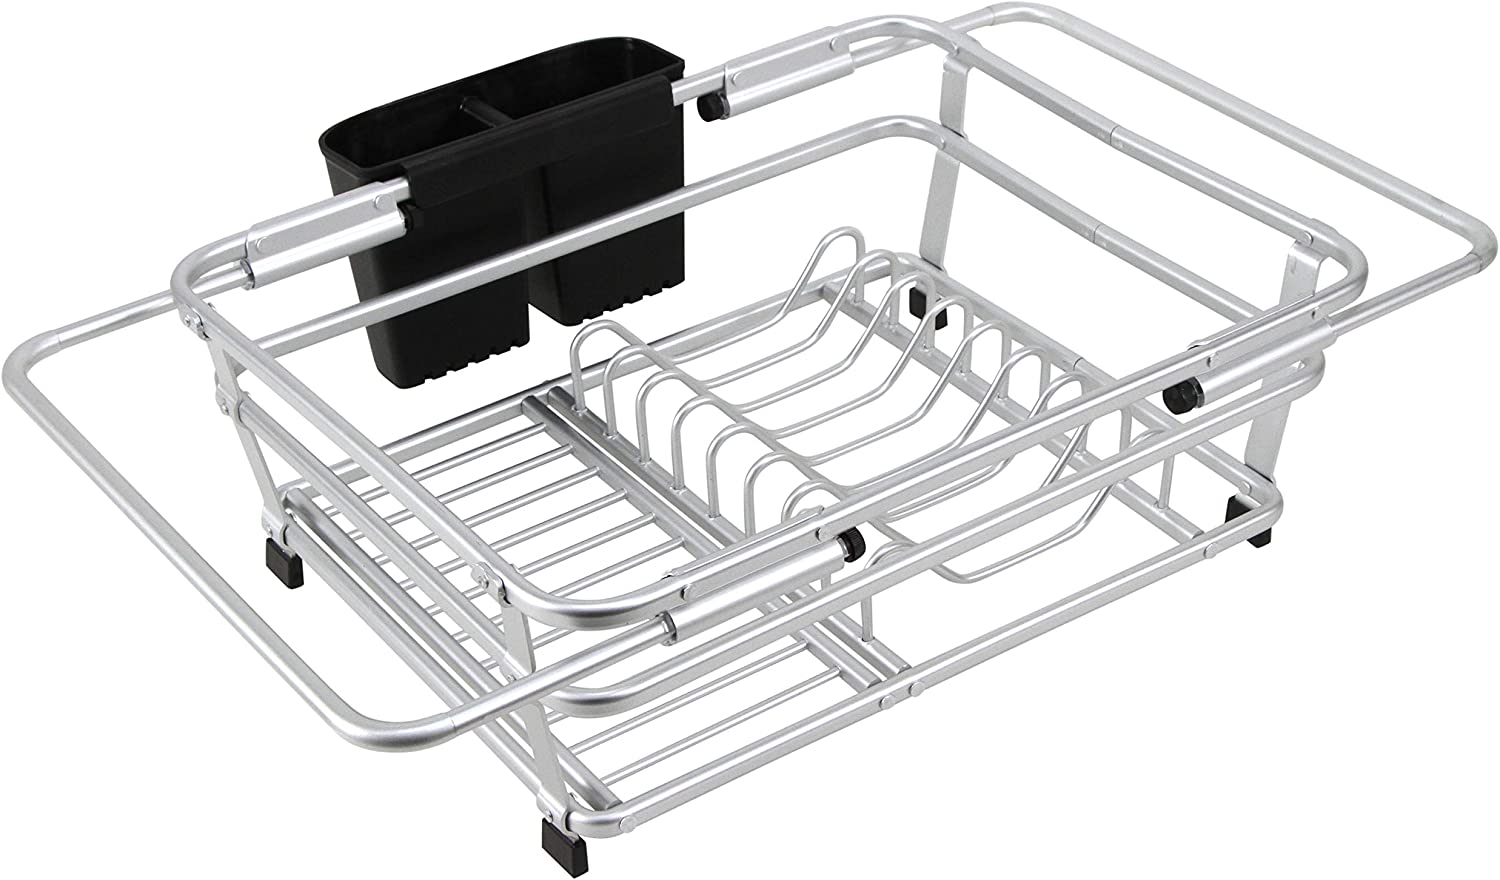 CozyBlock Expandable Popularity Aluminum Dish Drying Industry No. 1 Hold with Rack Utensil